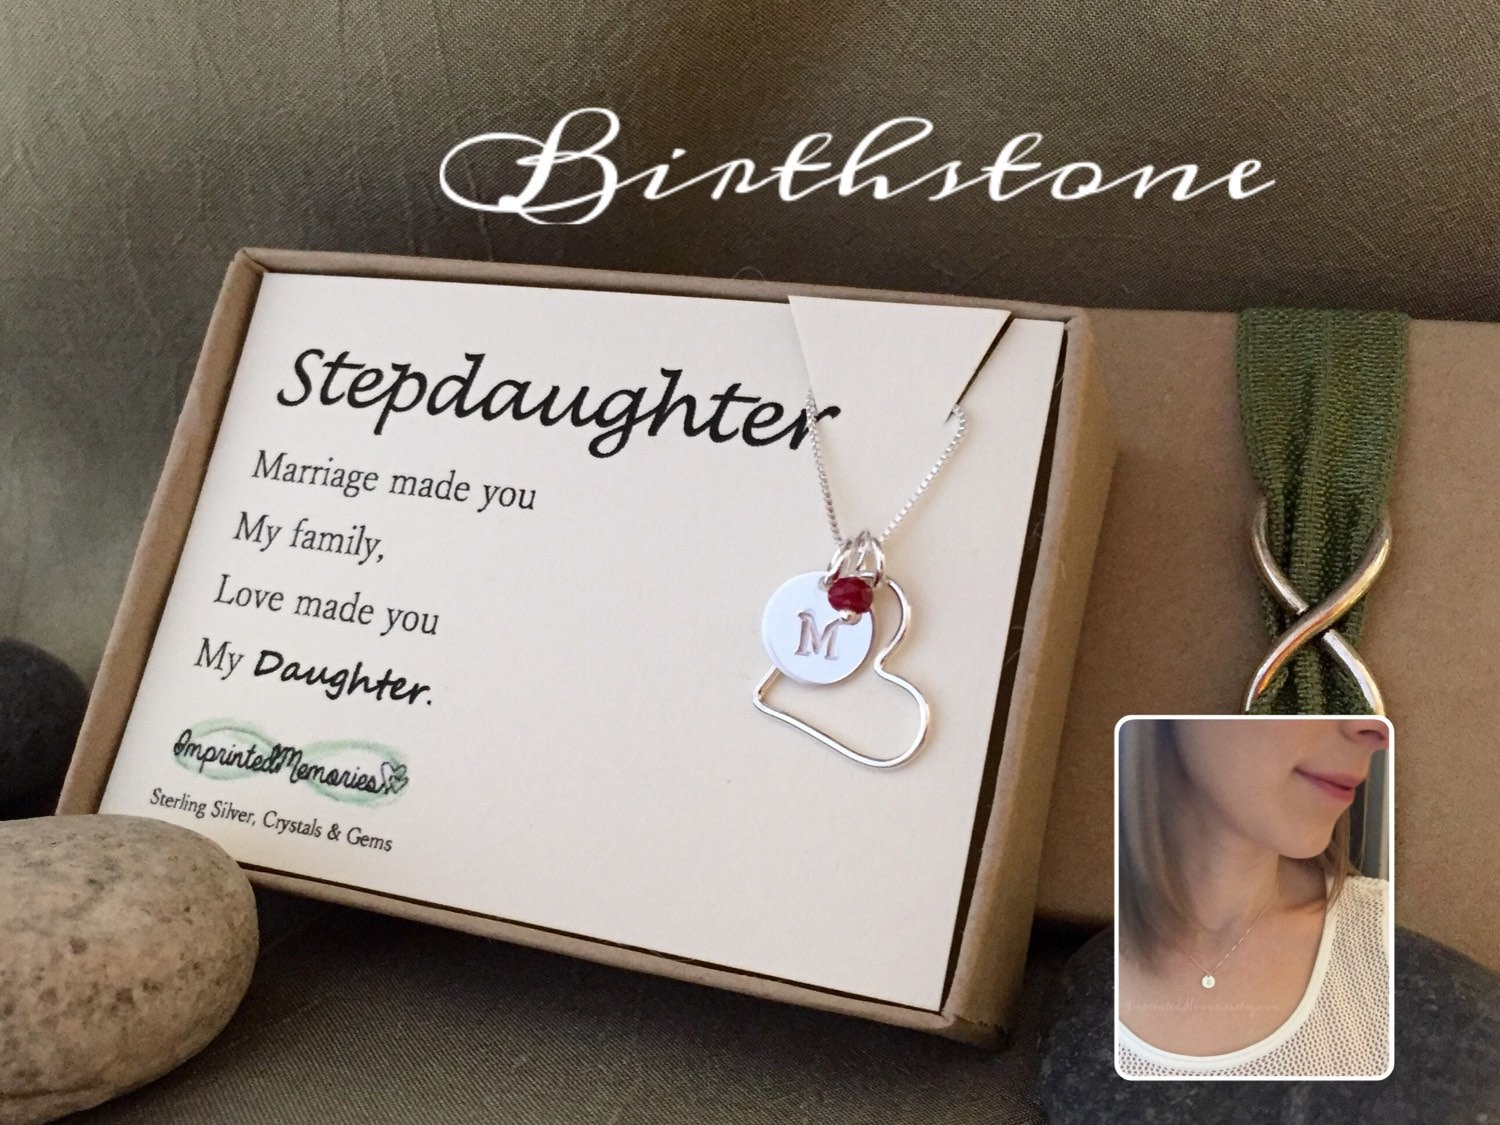 Wedding Gift To Dad From Daughter : Ideas Wedding Gift For Daughter stepdaughter gift new wedding by ...